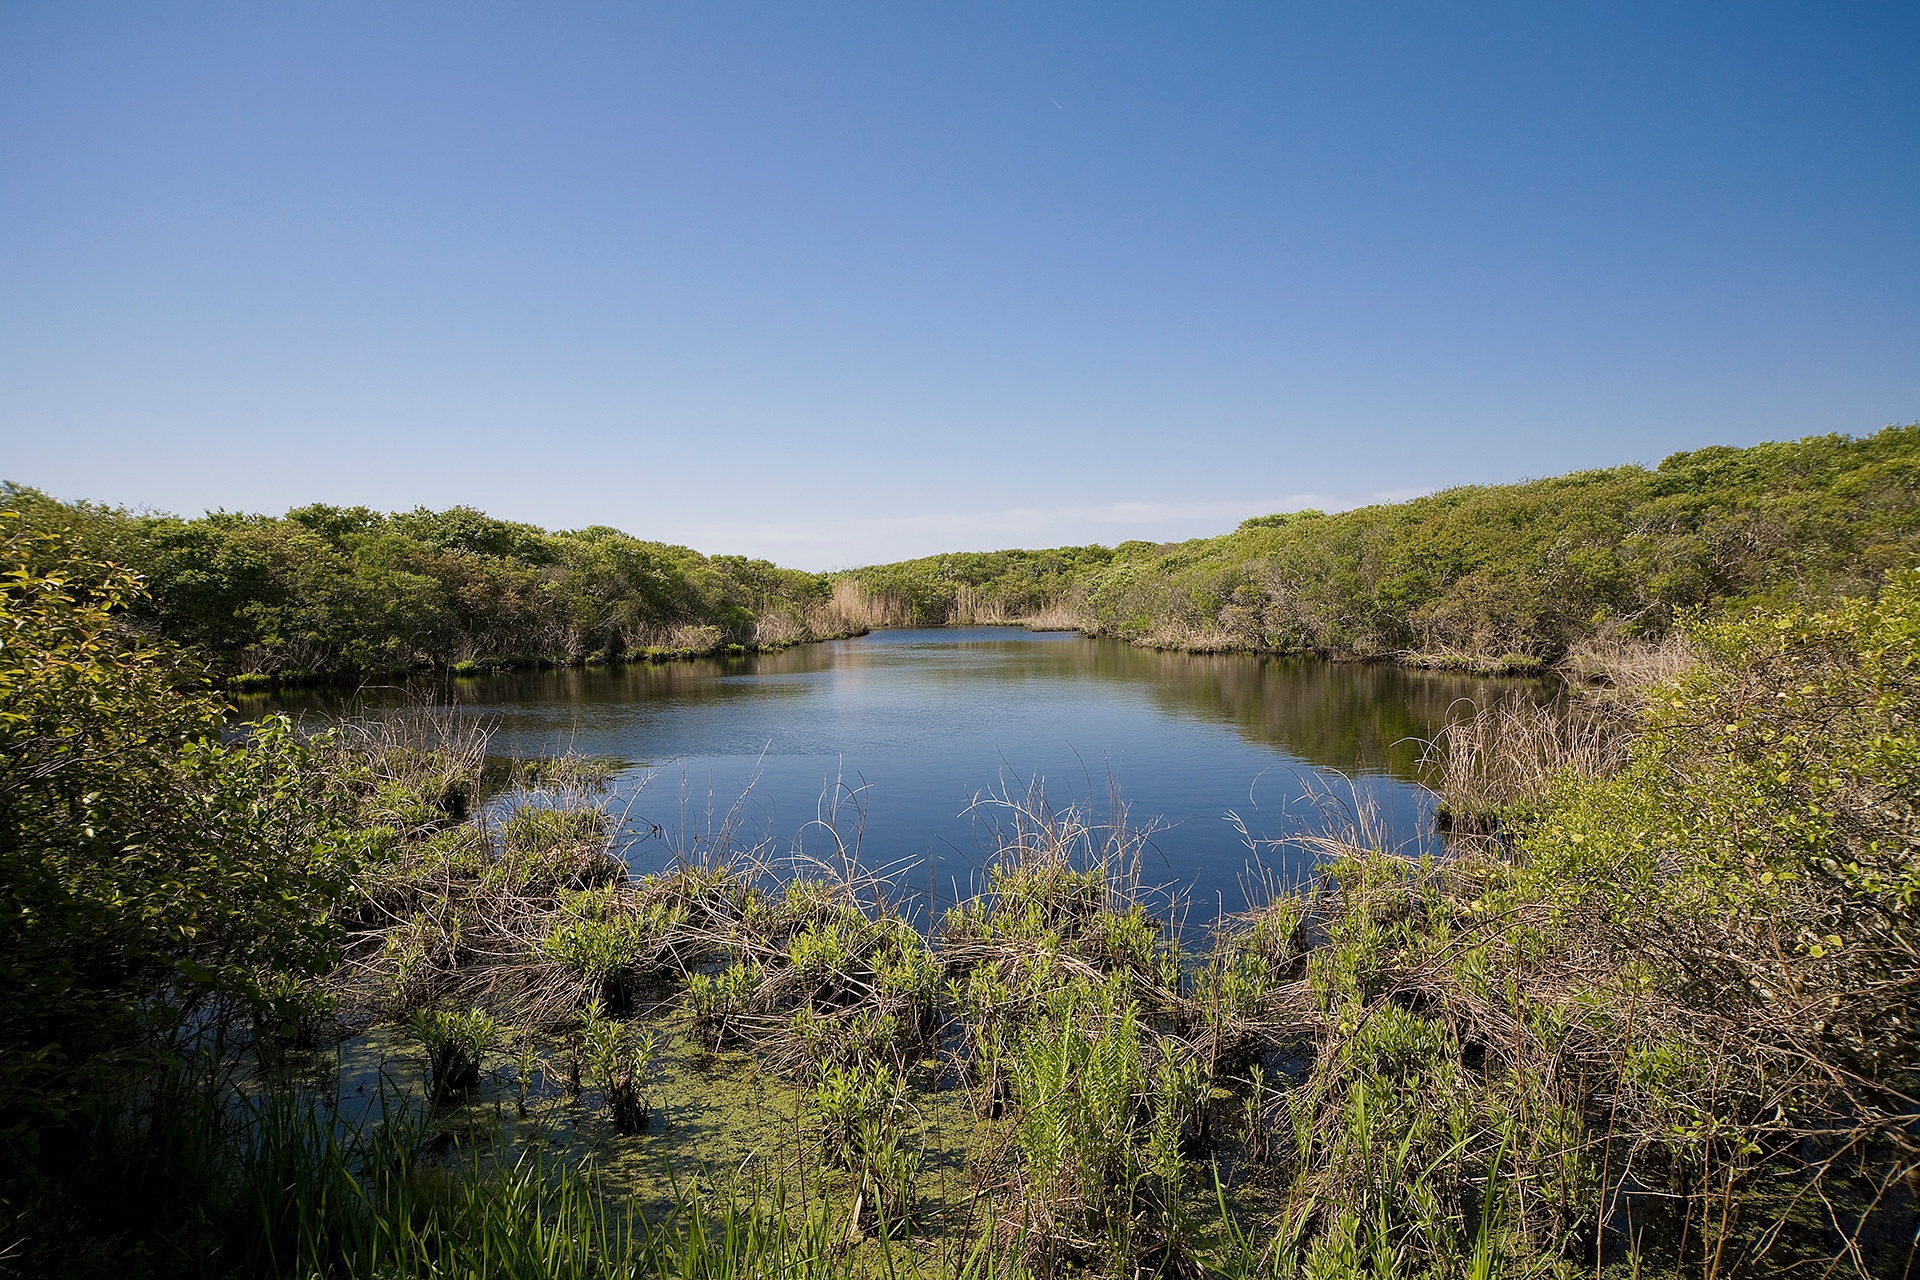 The property includes a scenic two-acre pond which forms a habitat for indigenous flora and fauna.